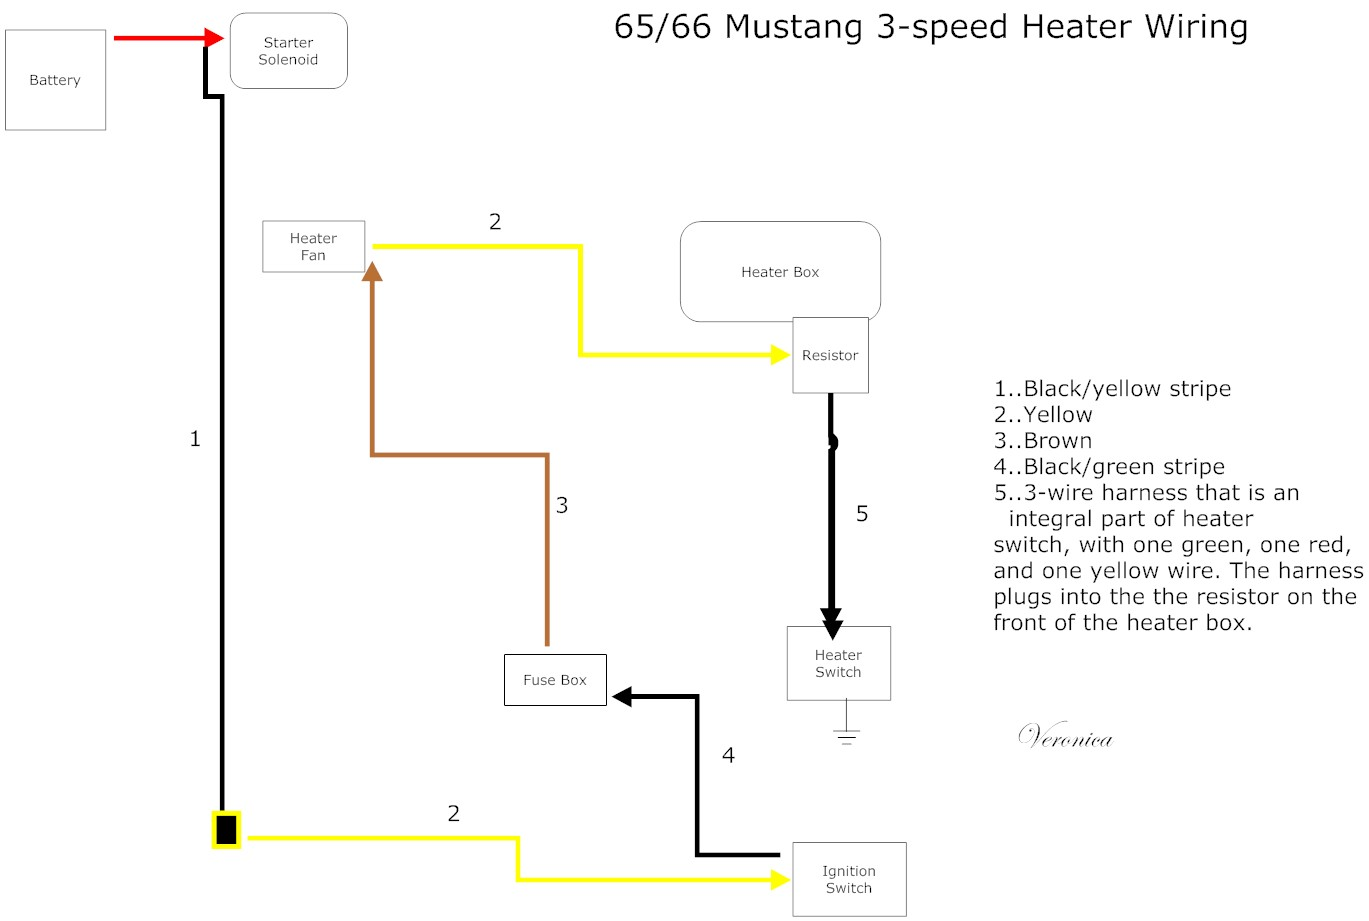 hight resolution of 1965 mustang heater wiring diagram